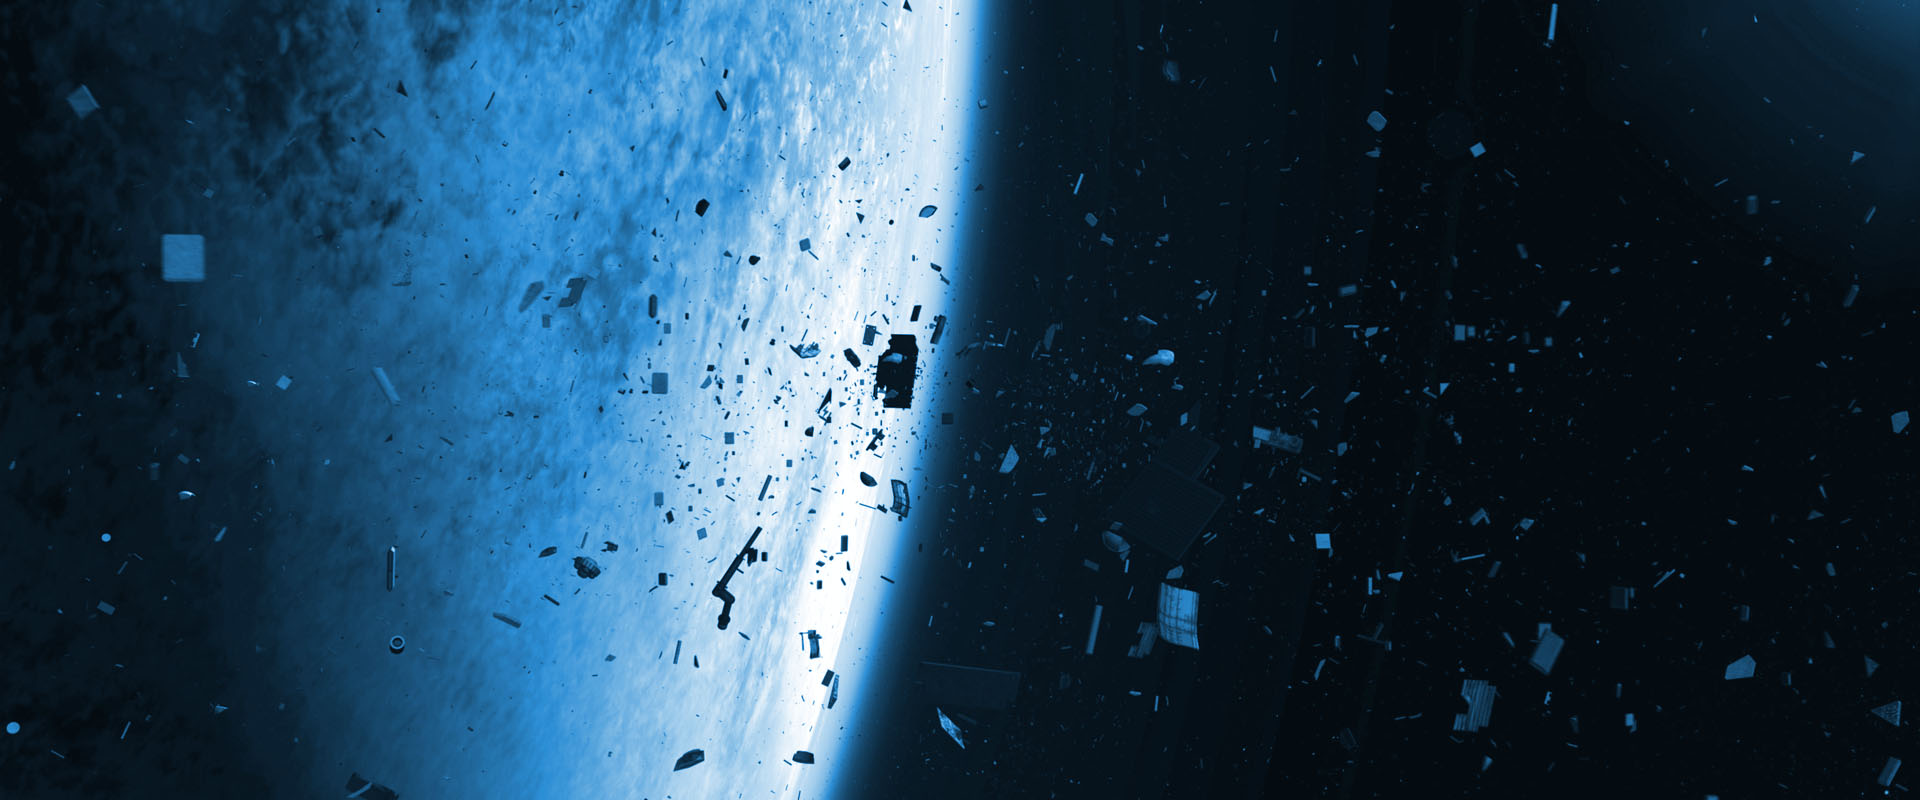 spacecraft in space - photo #47